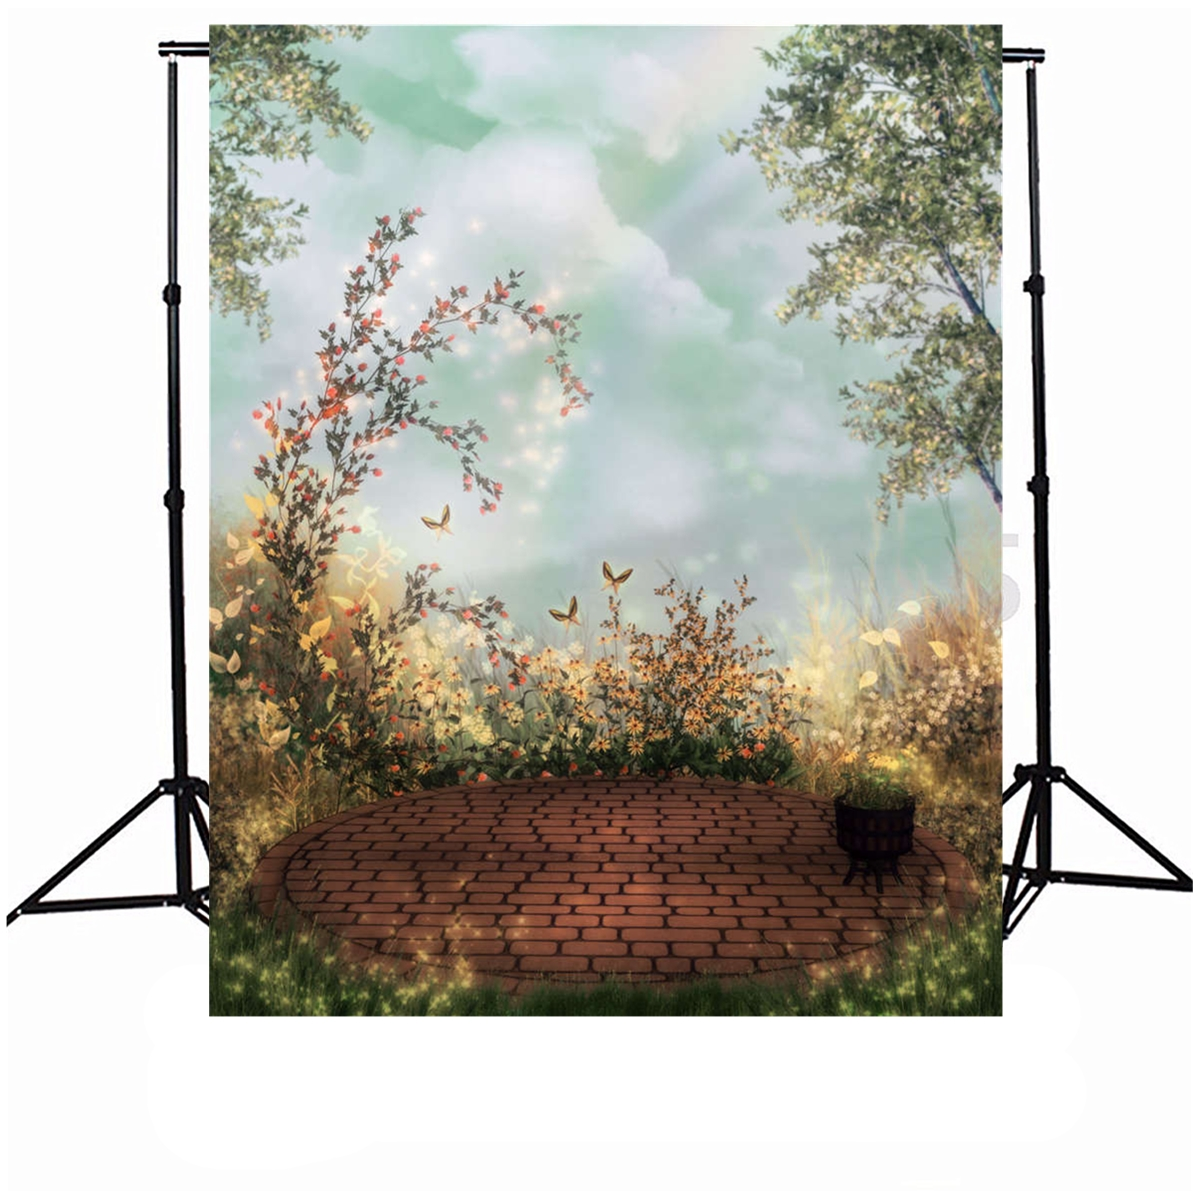 5x7ft Garden Vinyl Photography Background Cloud Children Photo Backdrop For Baby